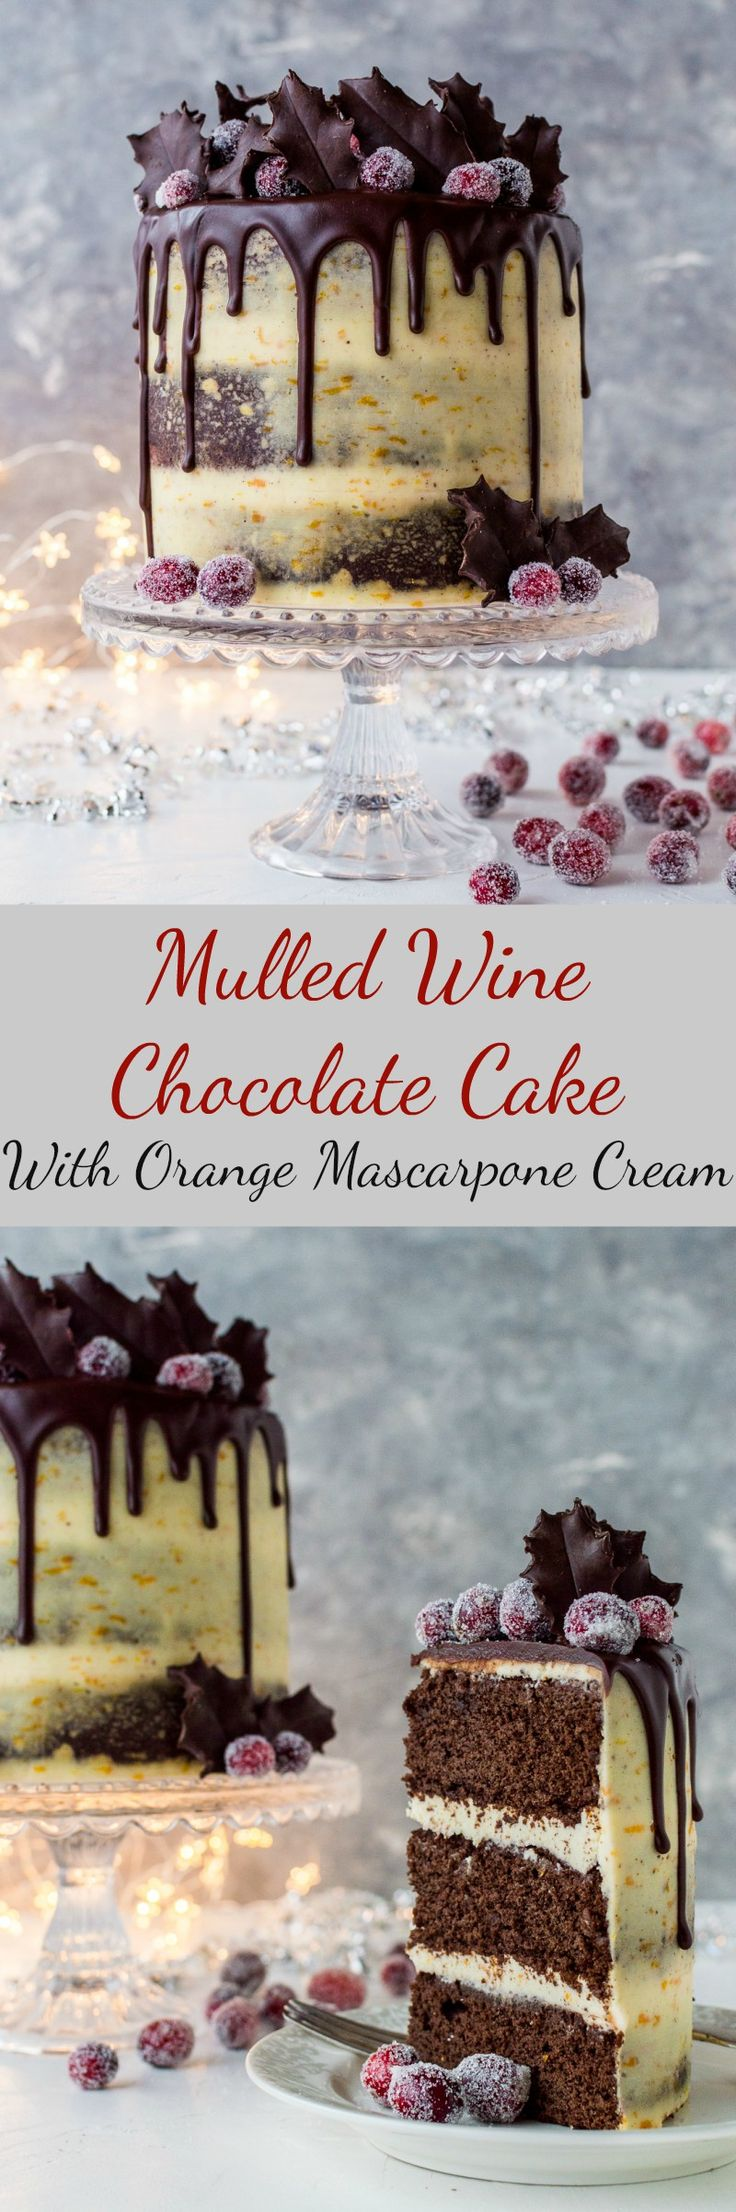 Mulled wine chocolate cake with orange mascarpone cream - a festive showstopper that tastes like Christmas!